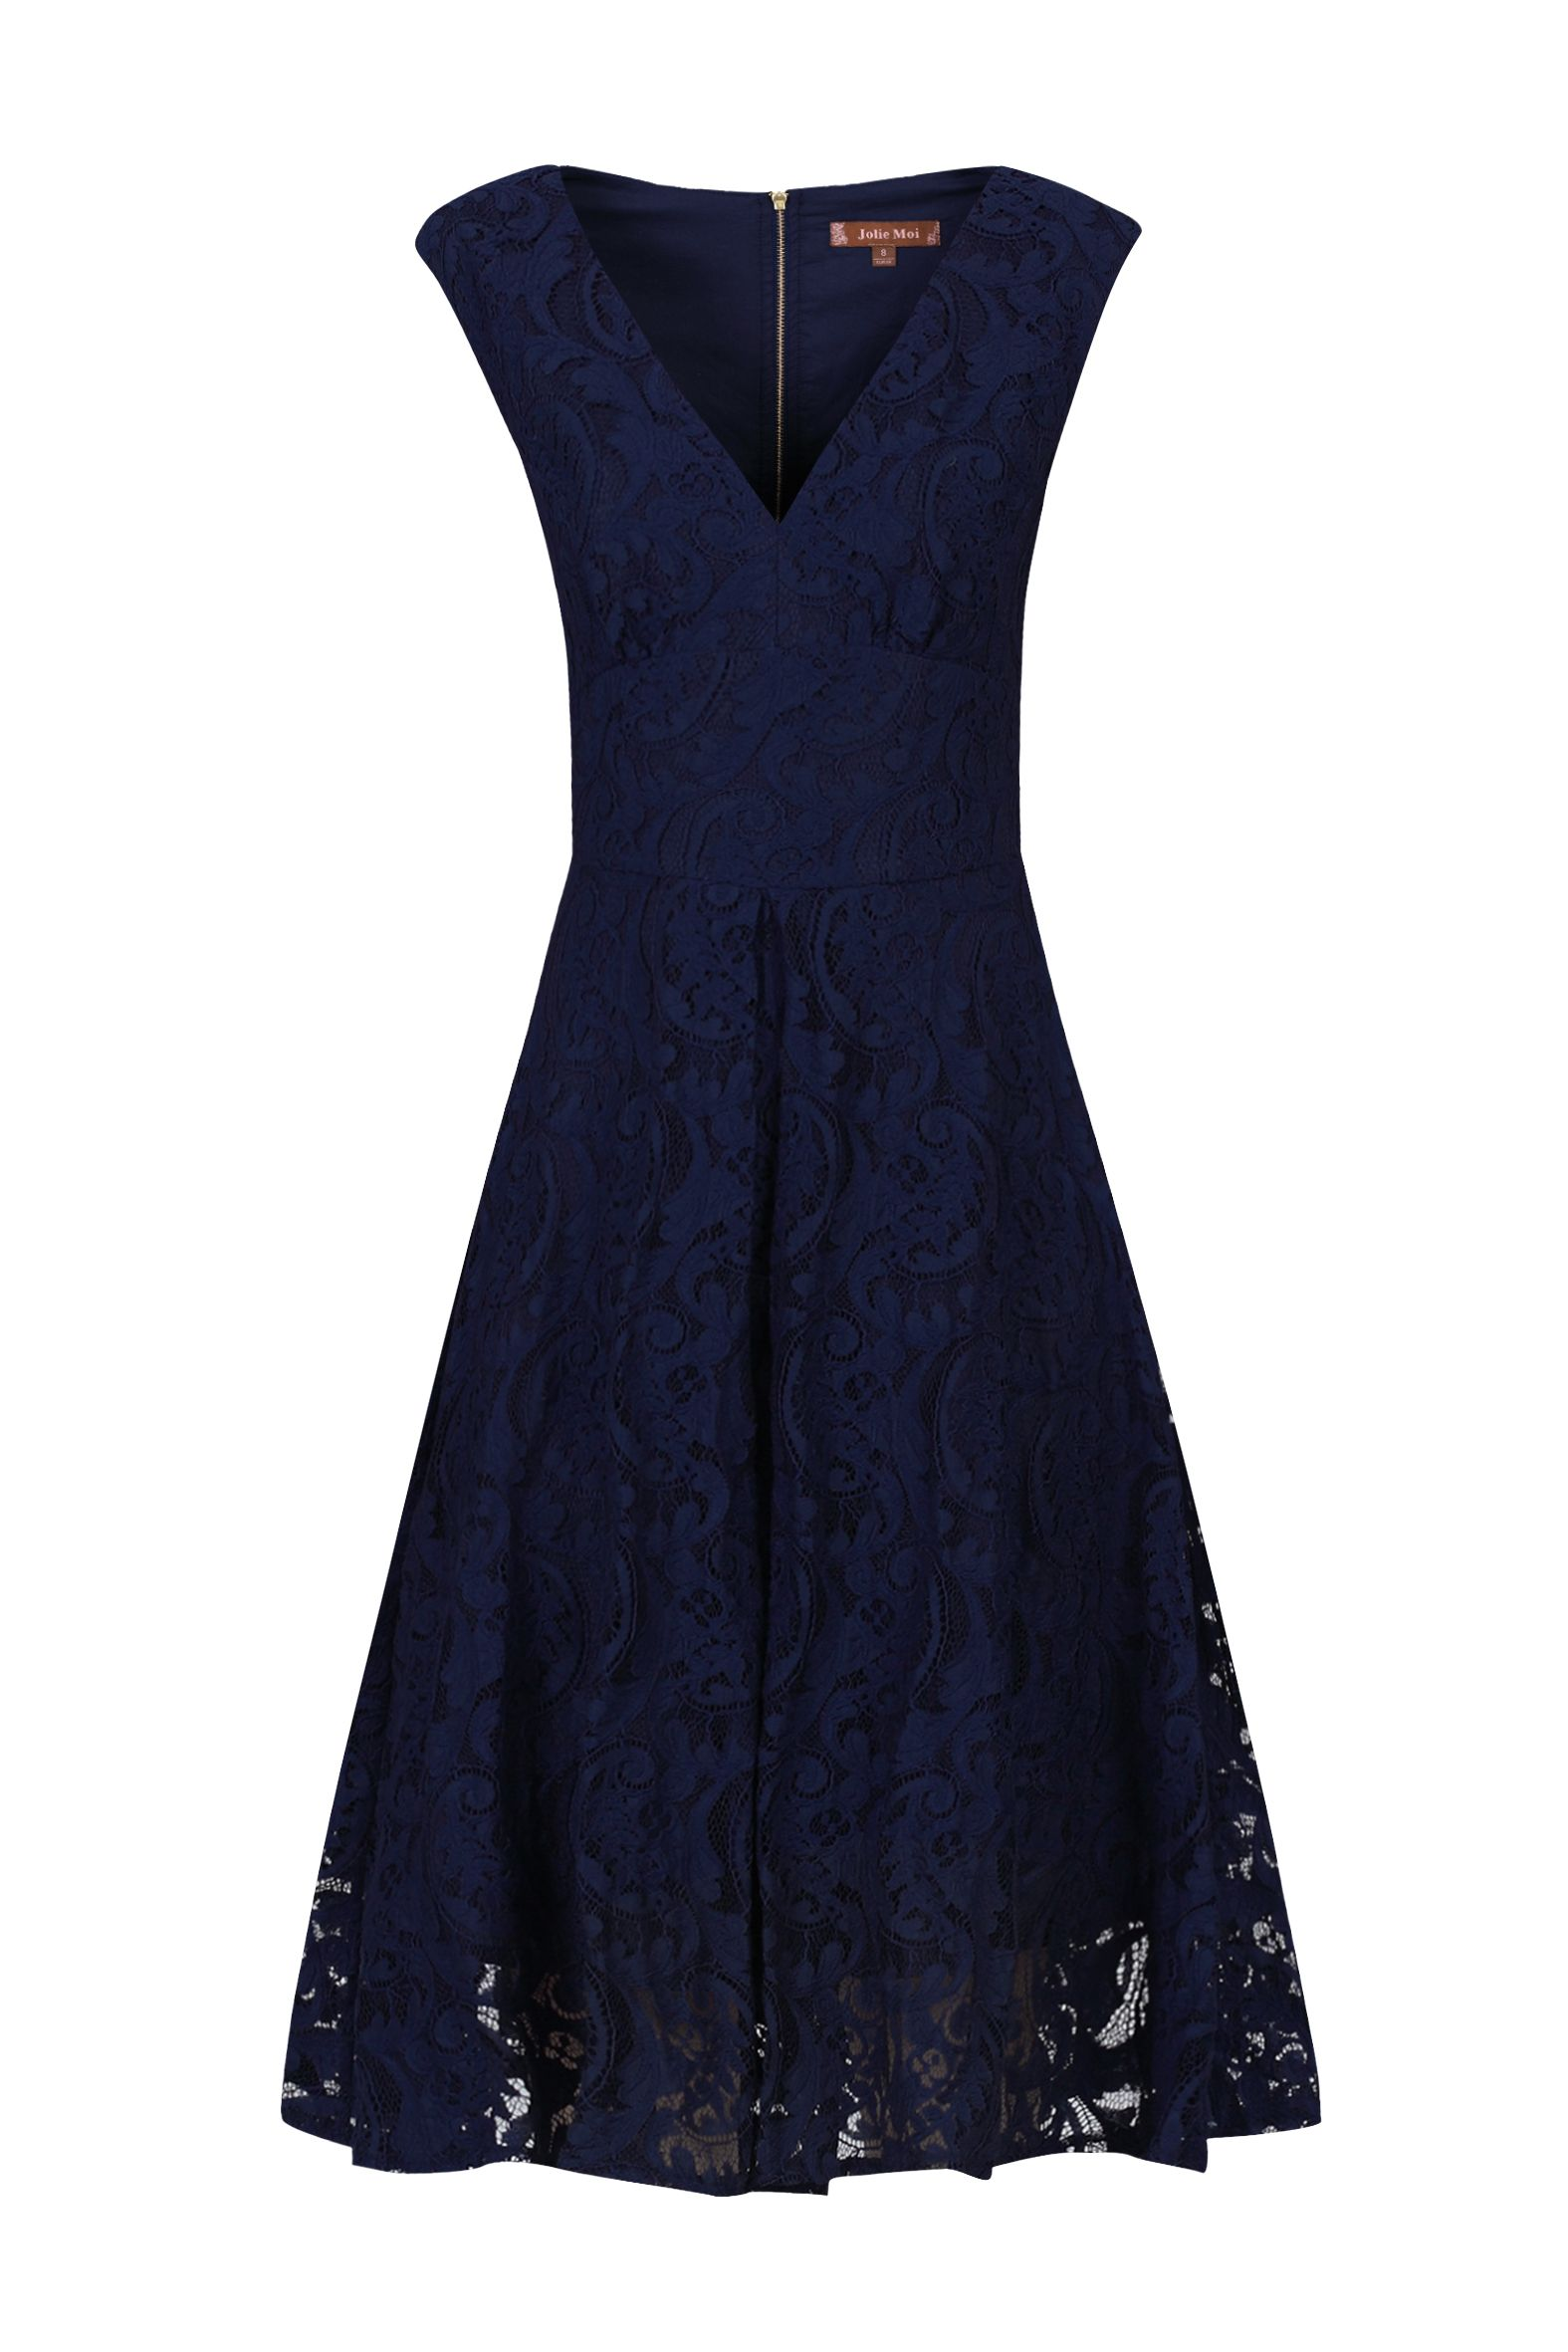 Jolie Moi Sweetheart Neckline 50s Lace Dress, Blue